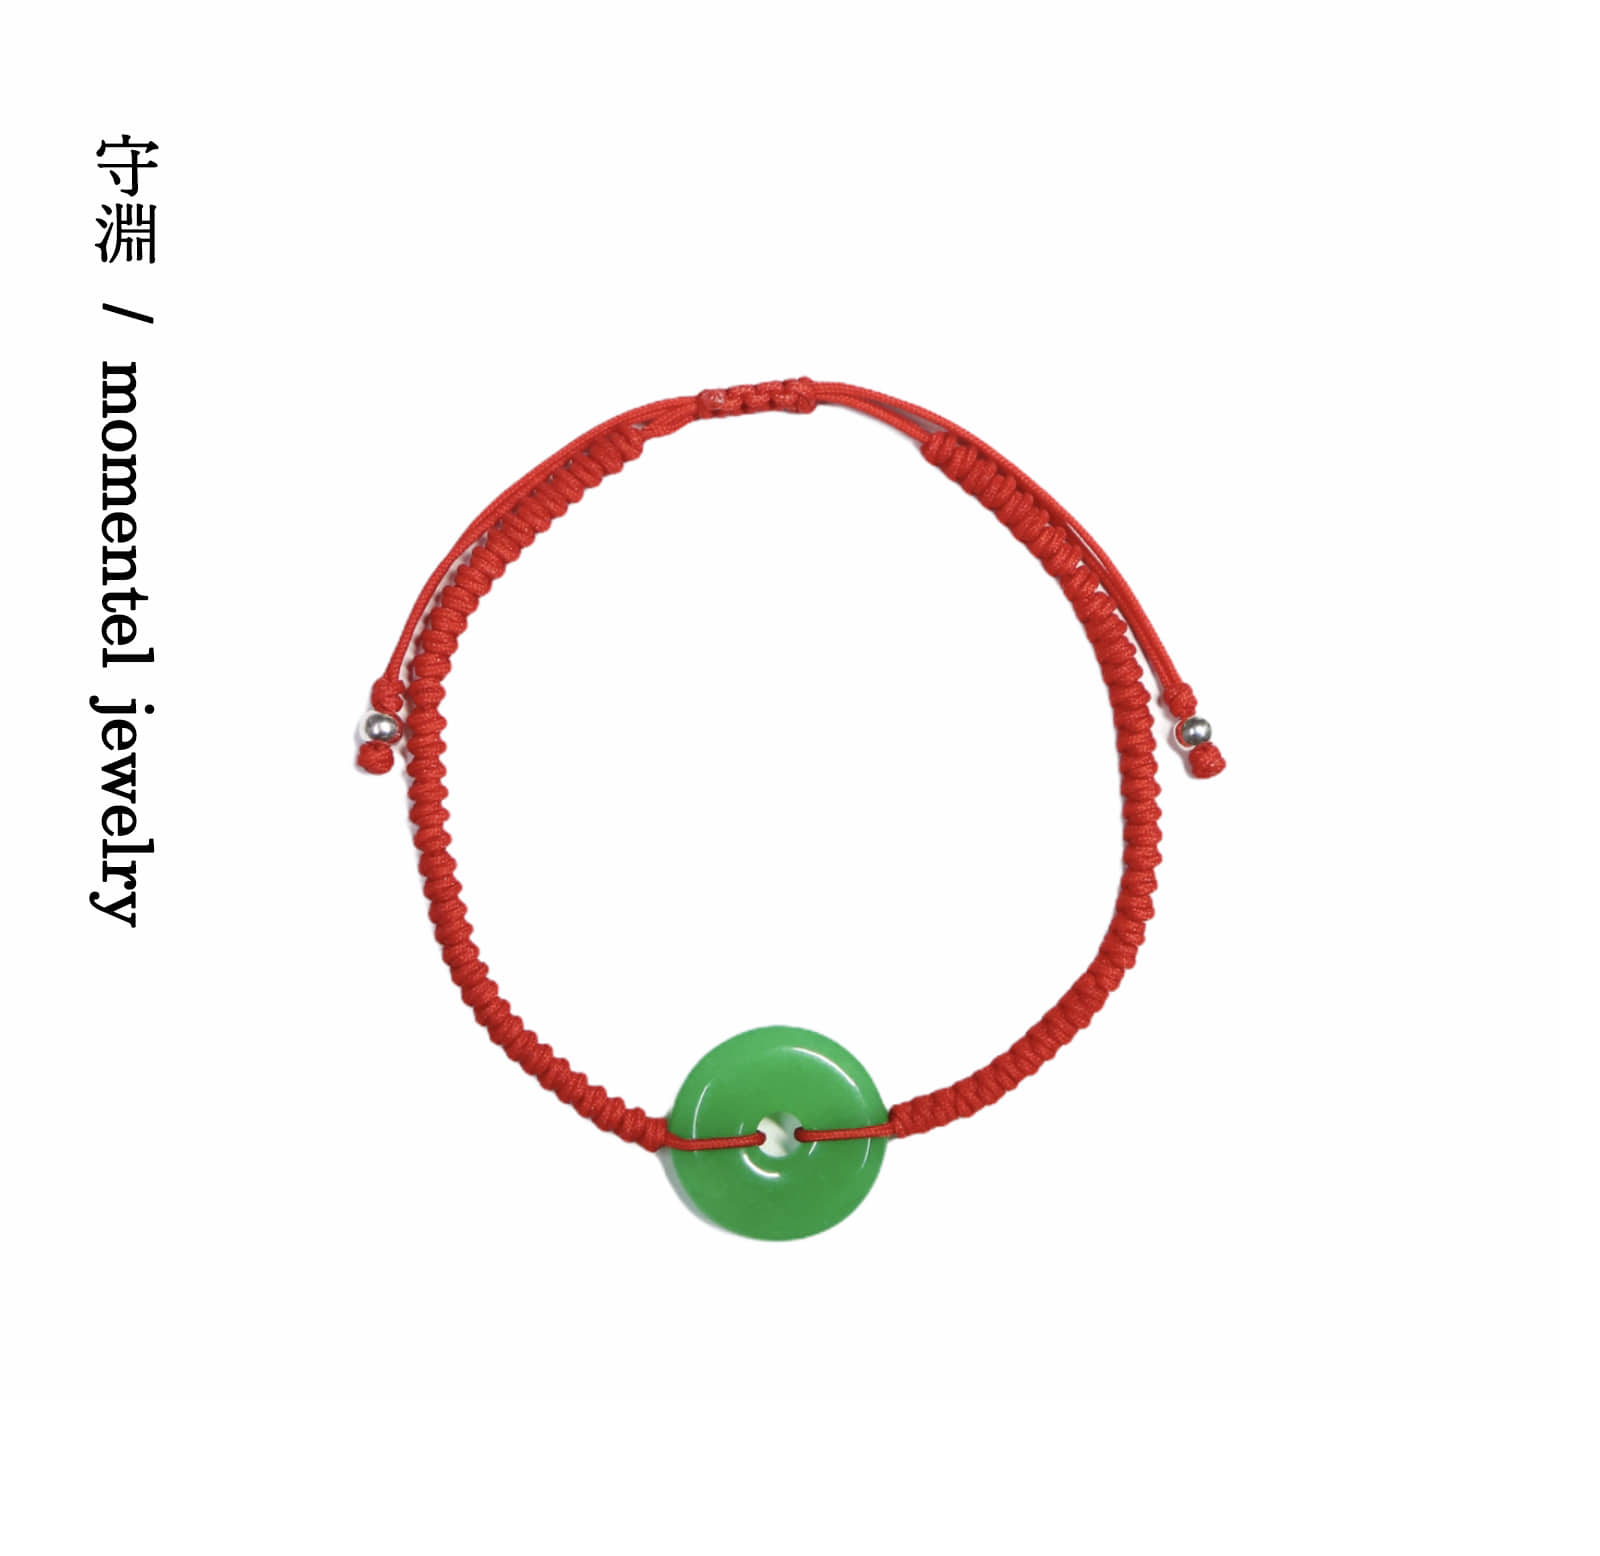 Charm jade with red string bracelet